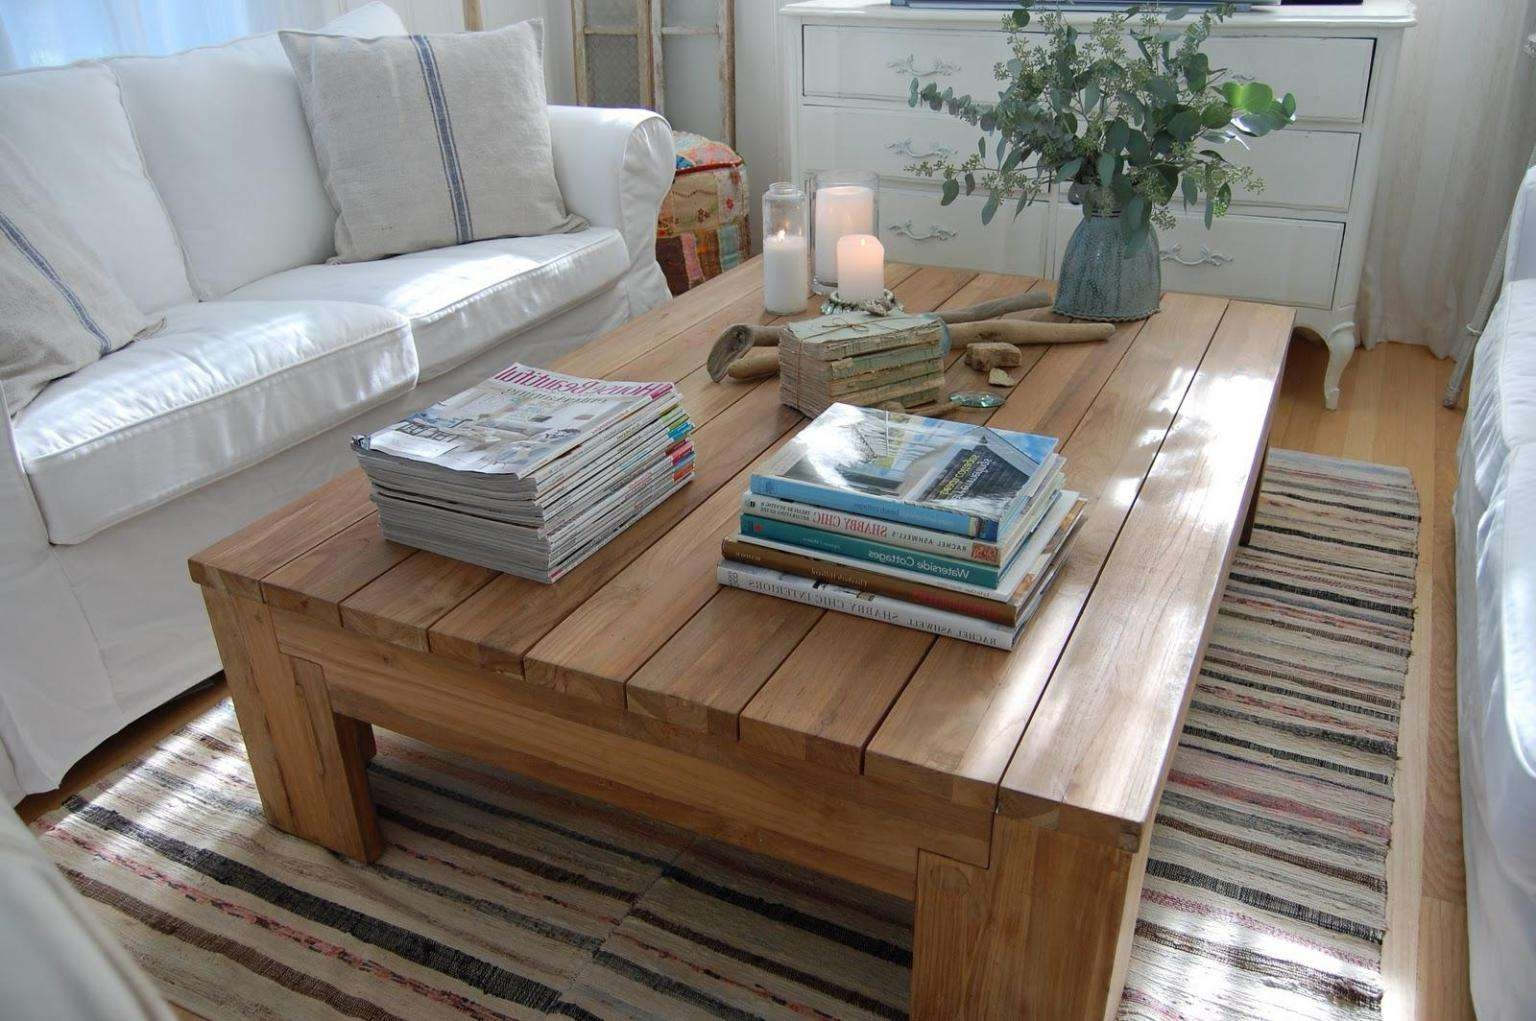 Fashionable Rustic Storage Diy Coffee Tables Intended For Coffee Tables : Mesmerizing Modern Coffee Table Plans Diy Rustic (View 17 of 20)